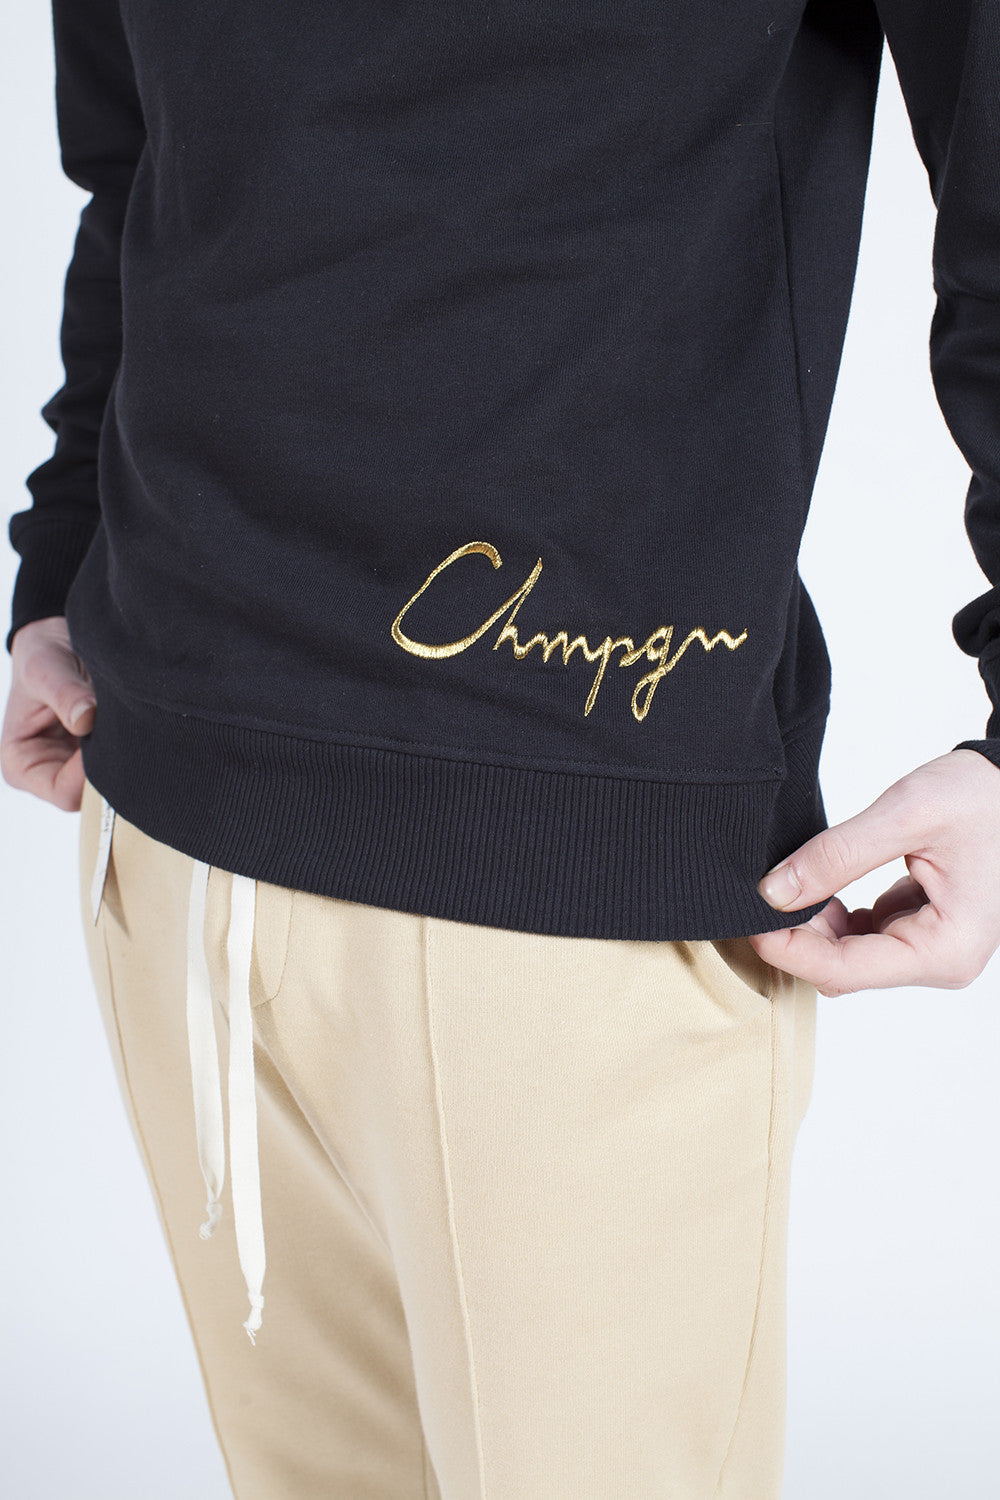 SWEATER -  GOLD CHMPGN - BLACK